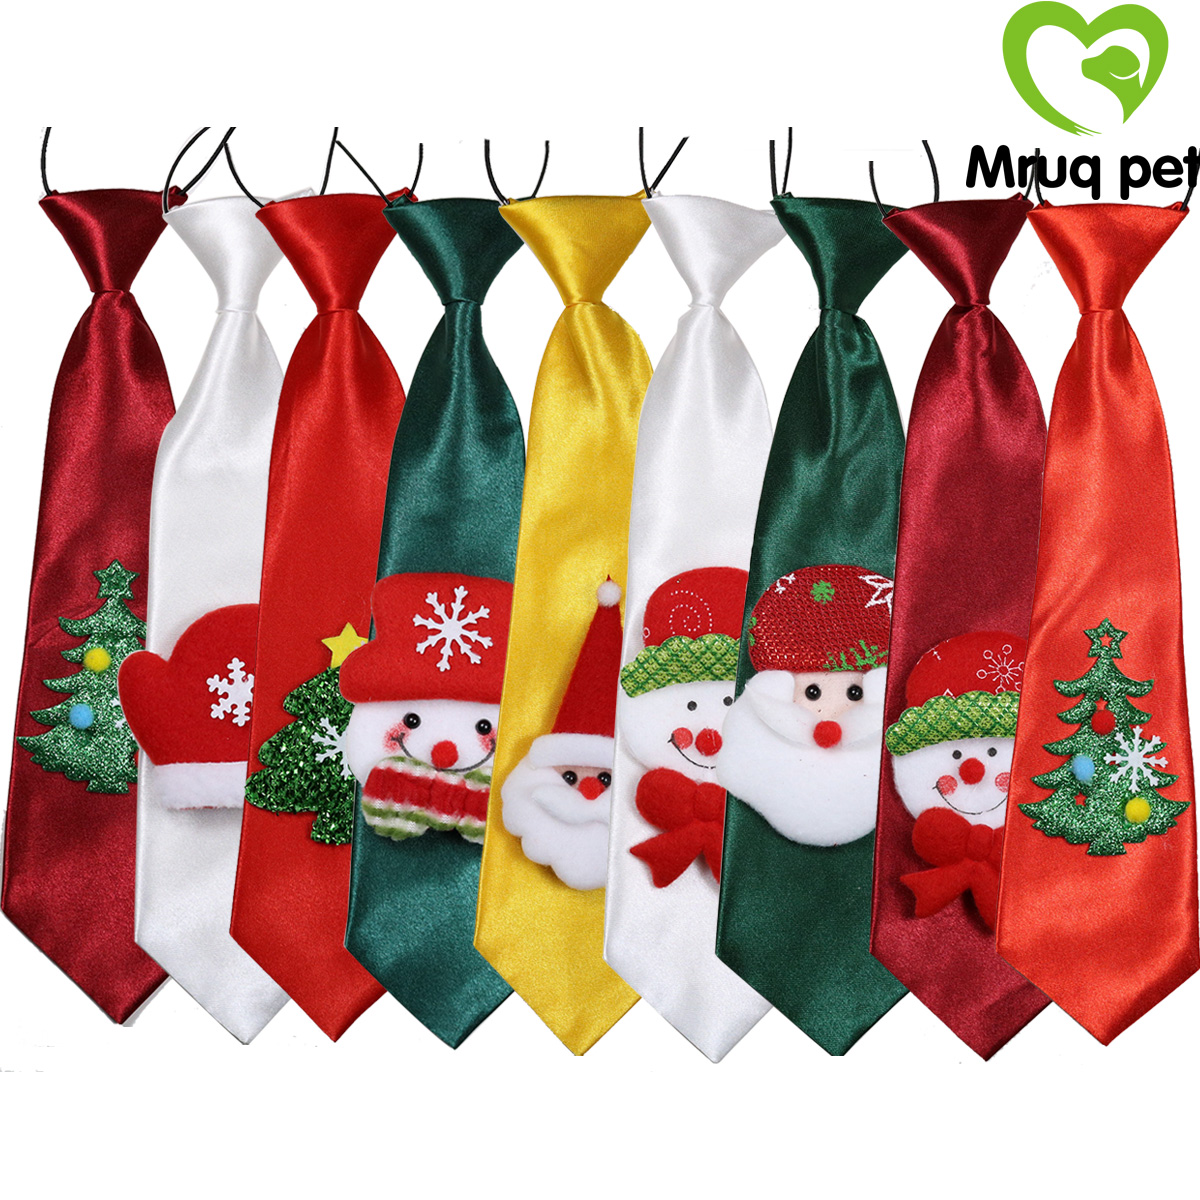 50pcs Christmas Child Kids Pet Dog Neck Ties&Bow Ties for Large Dog Neckties Dog Grooming Accessories Pet Products